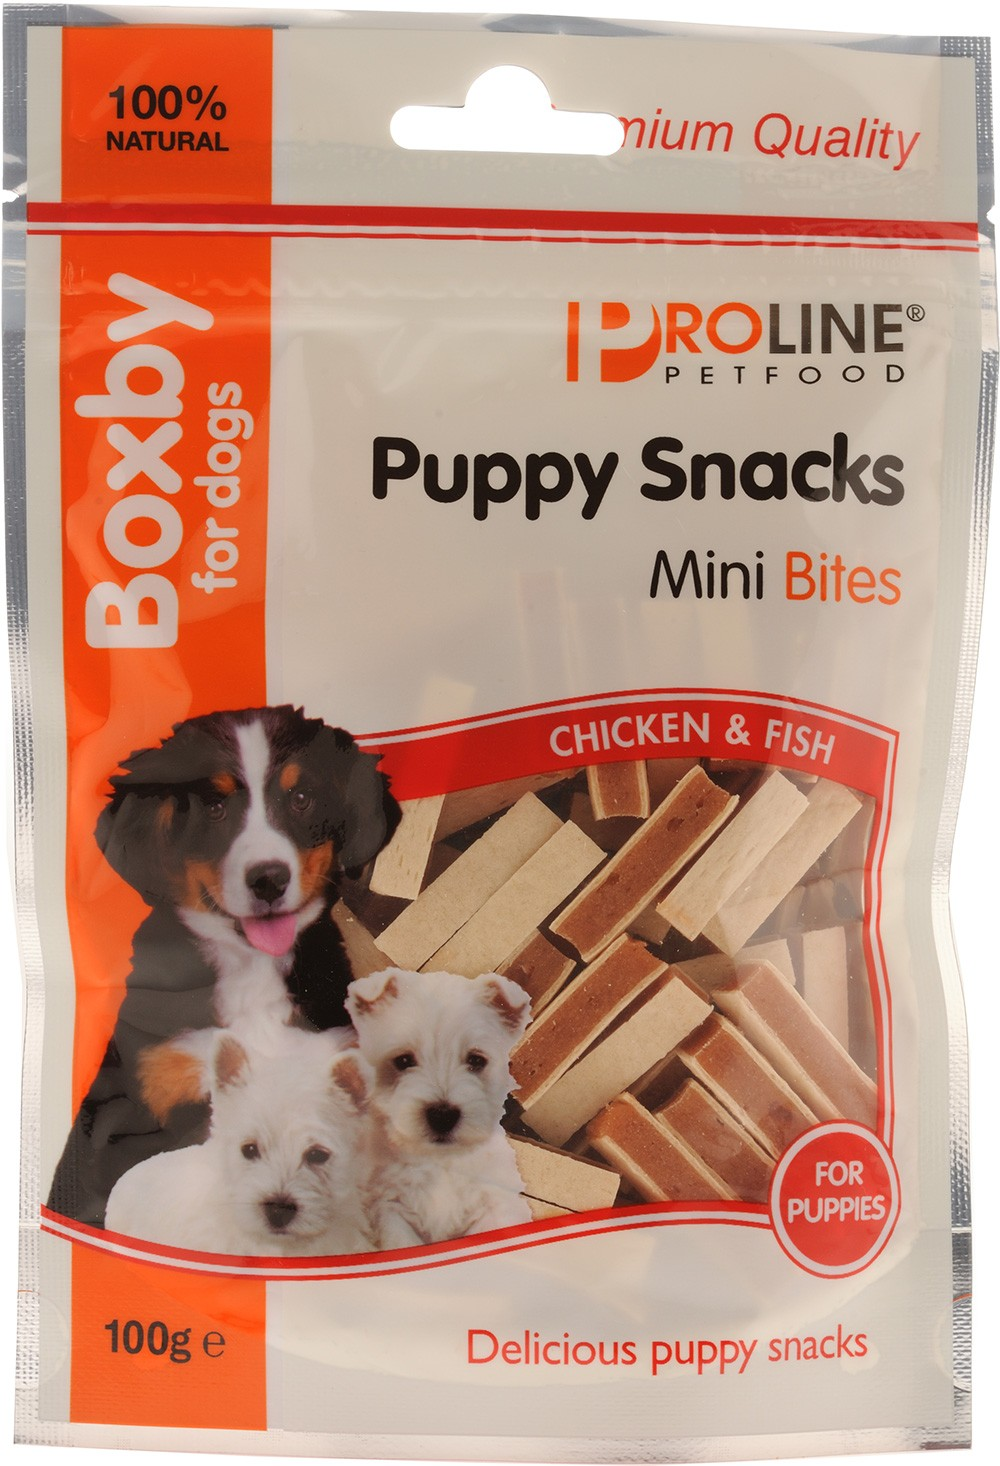 Boxby Puppy Snacks. Mini bites 100g.